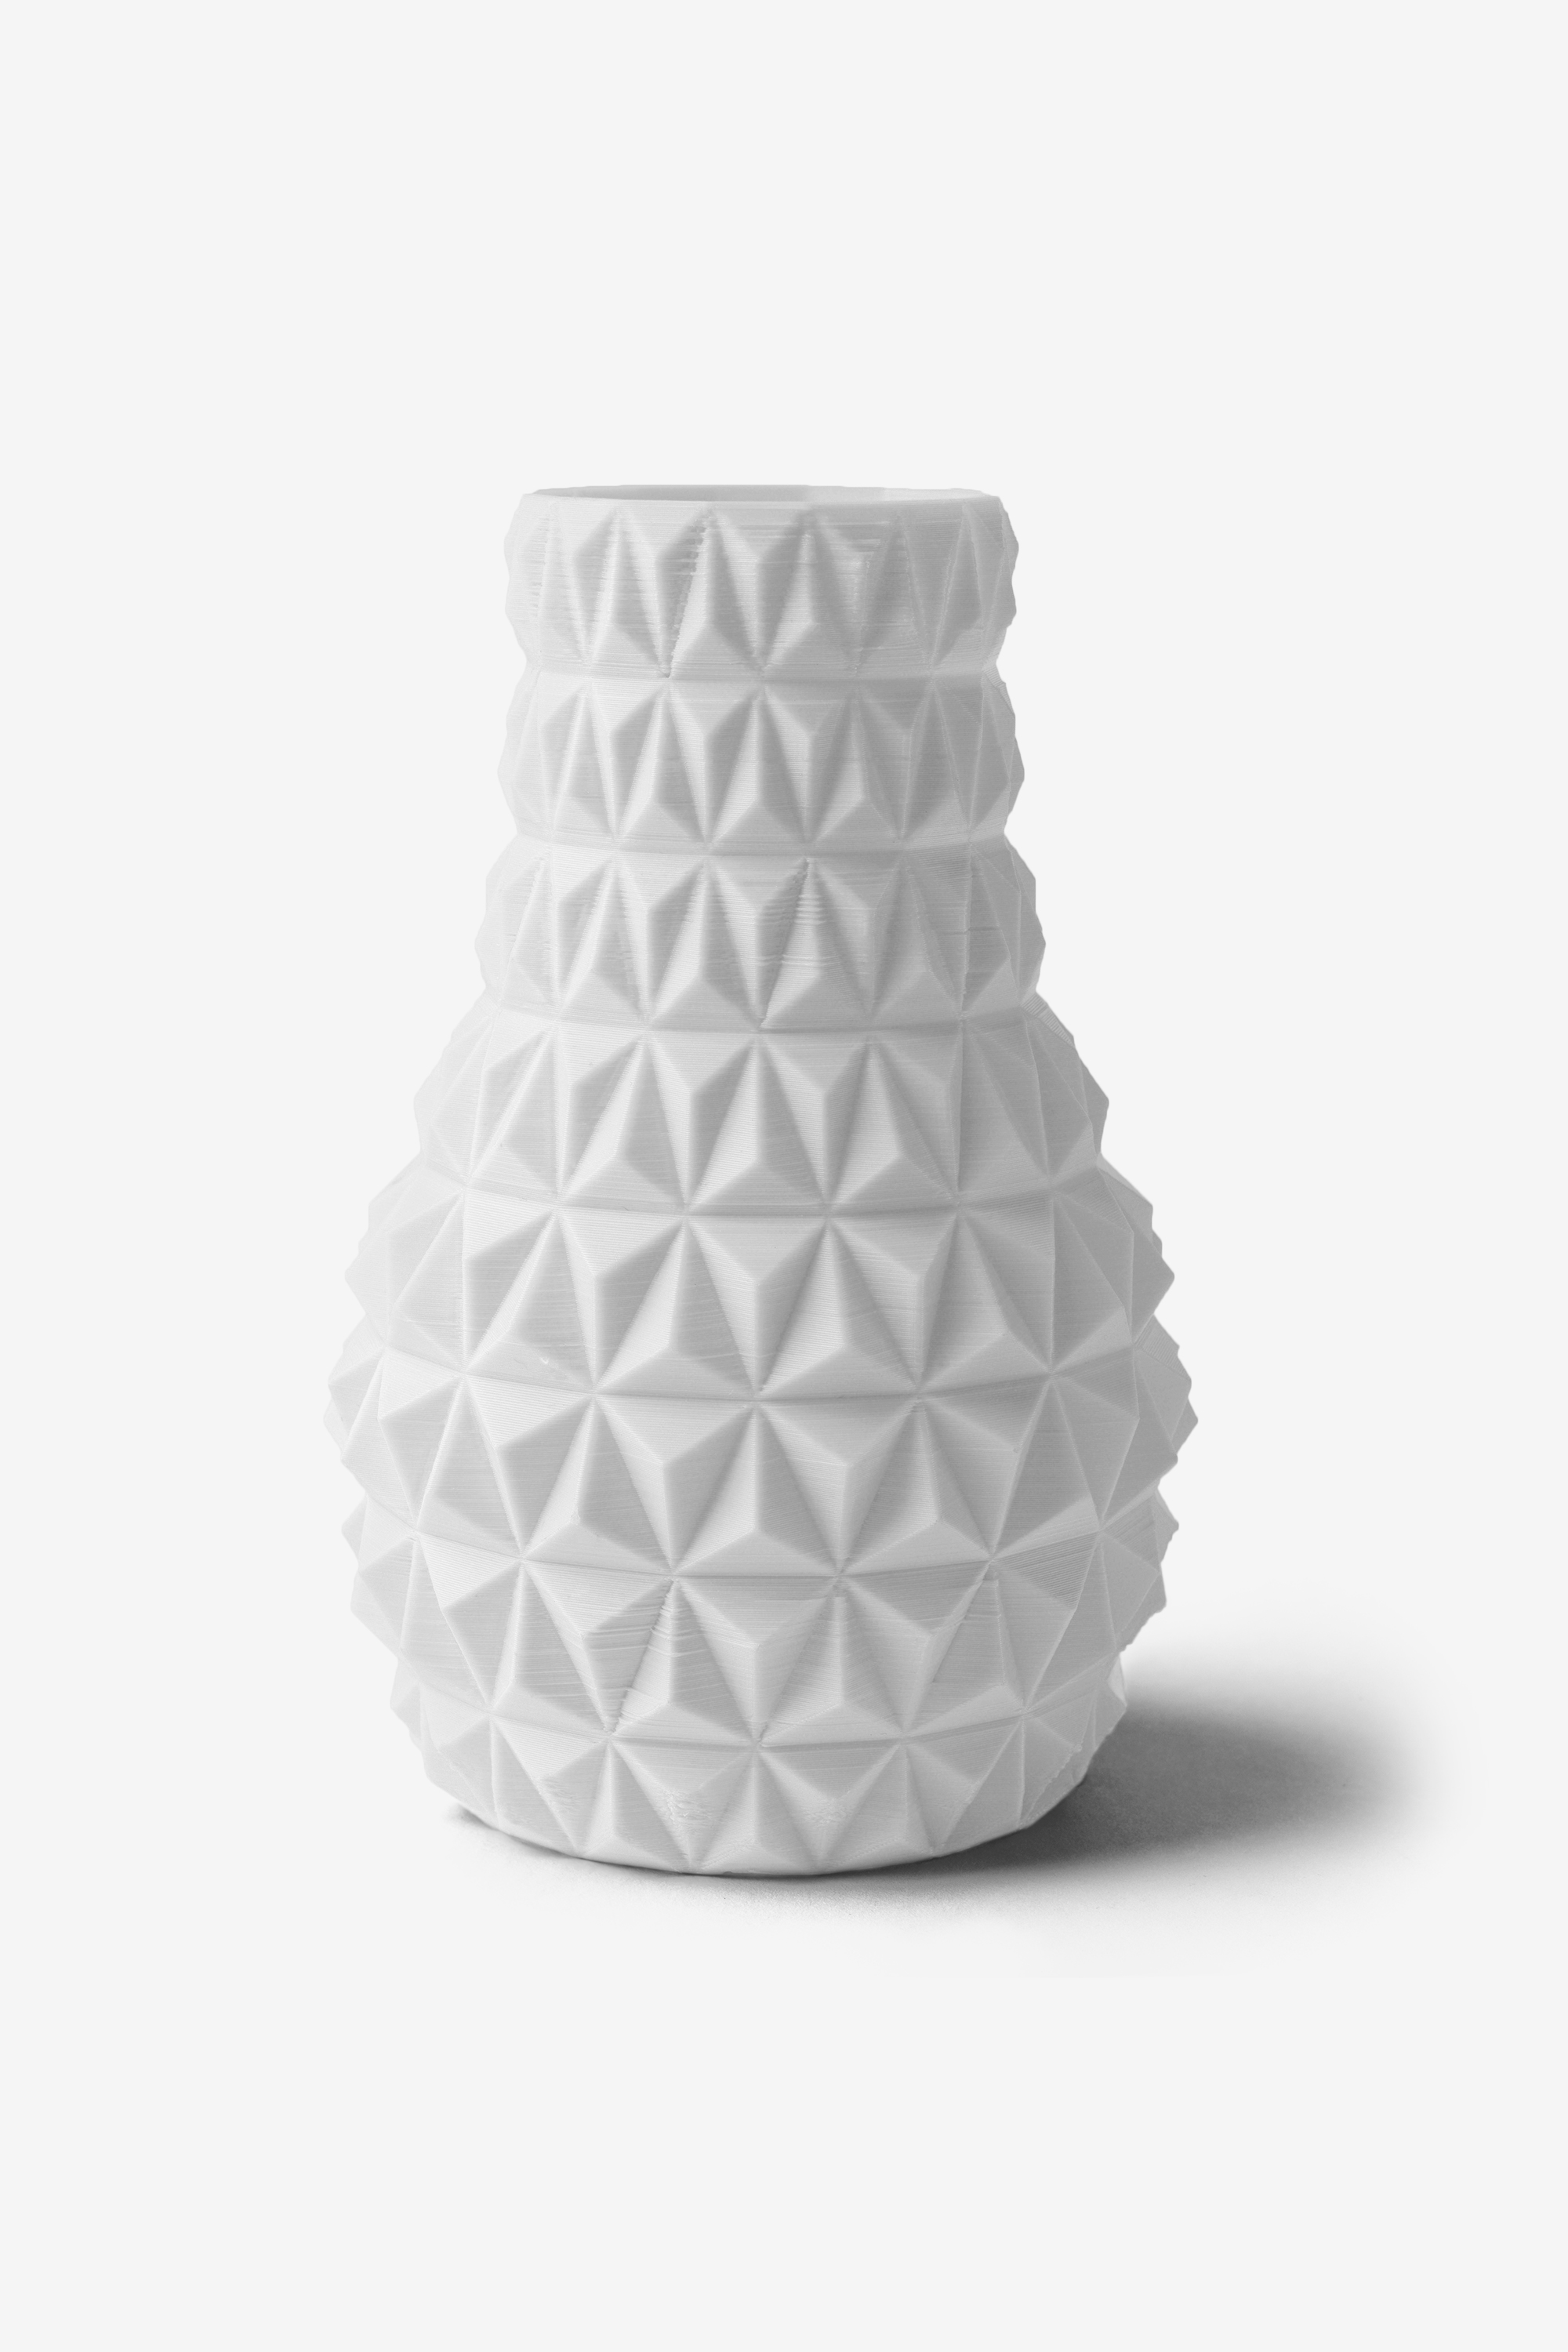 3D Printed Faceted Vase in White, Design by Matthijs Kok for Cubify